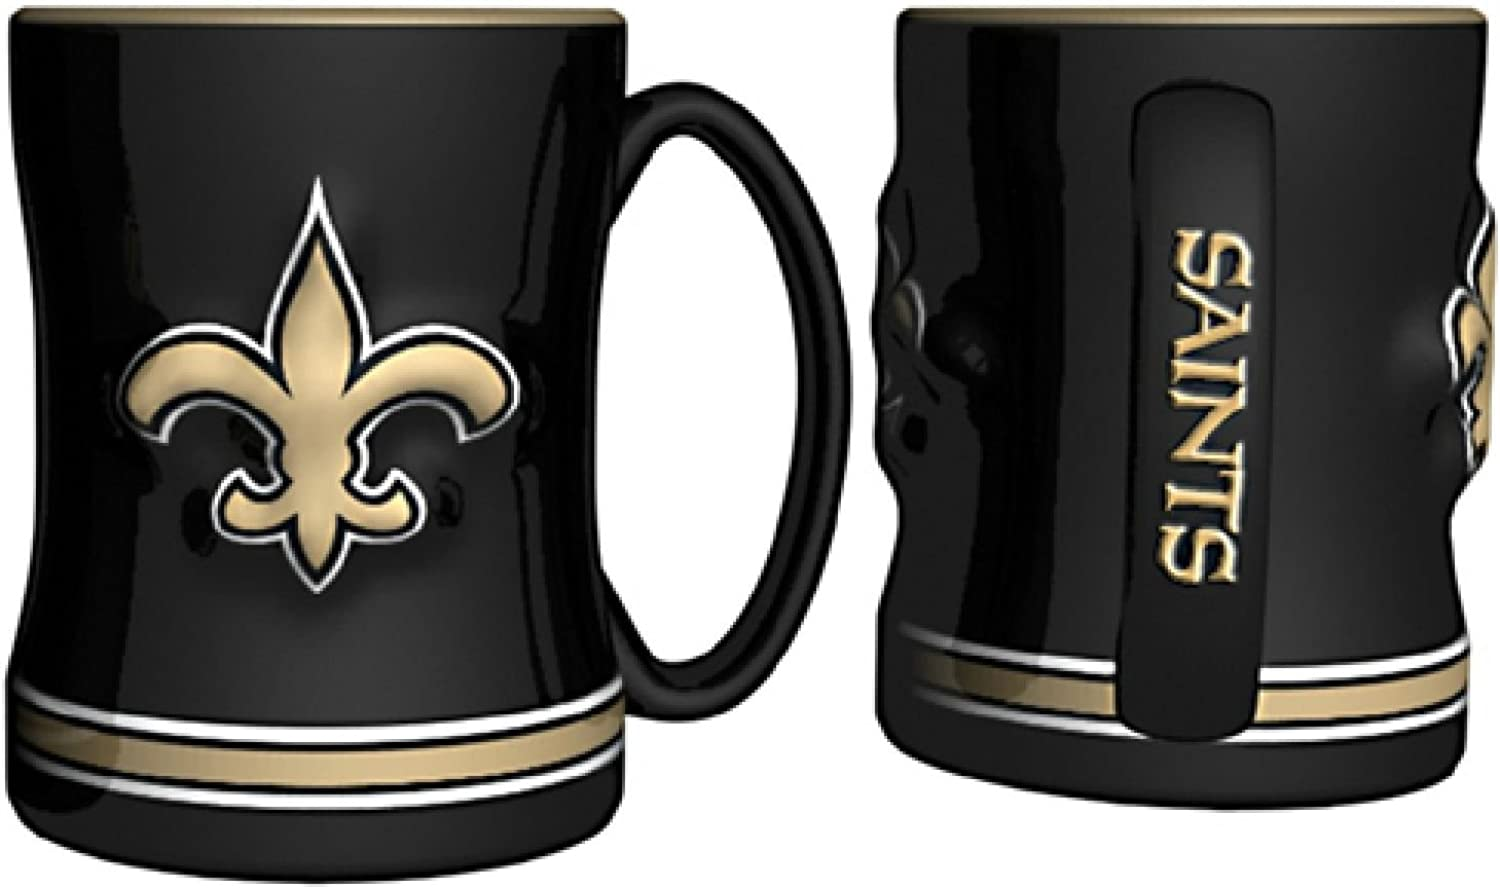 New Orleans Saints Sculpted Coffee Mug